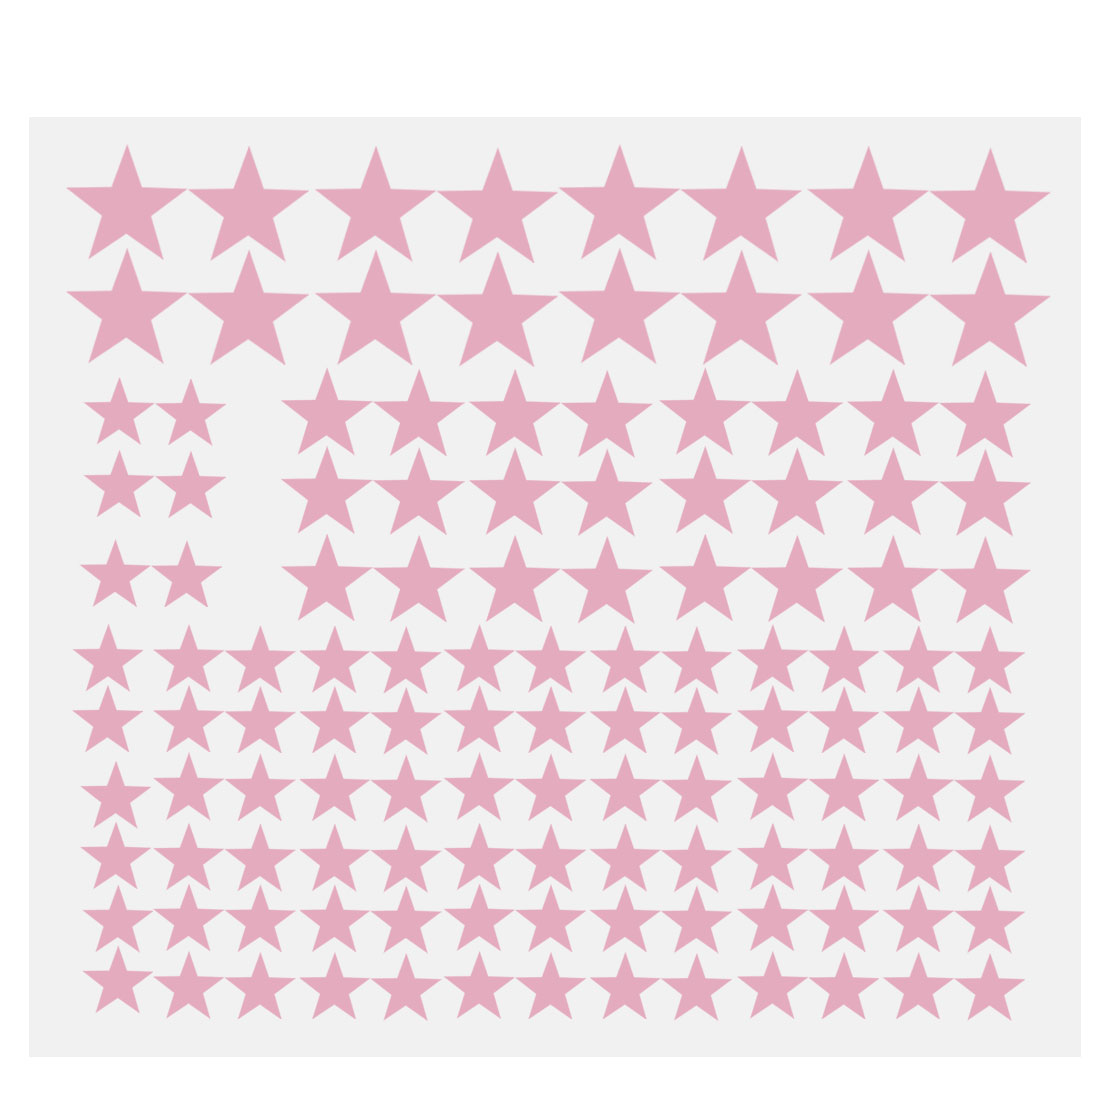 110pcs Star Pattern Wall Stickers Removable Art Decal for Bedroom Pink